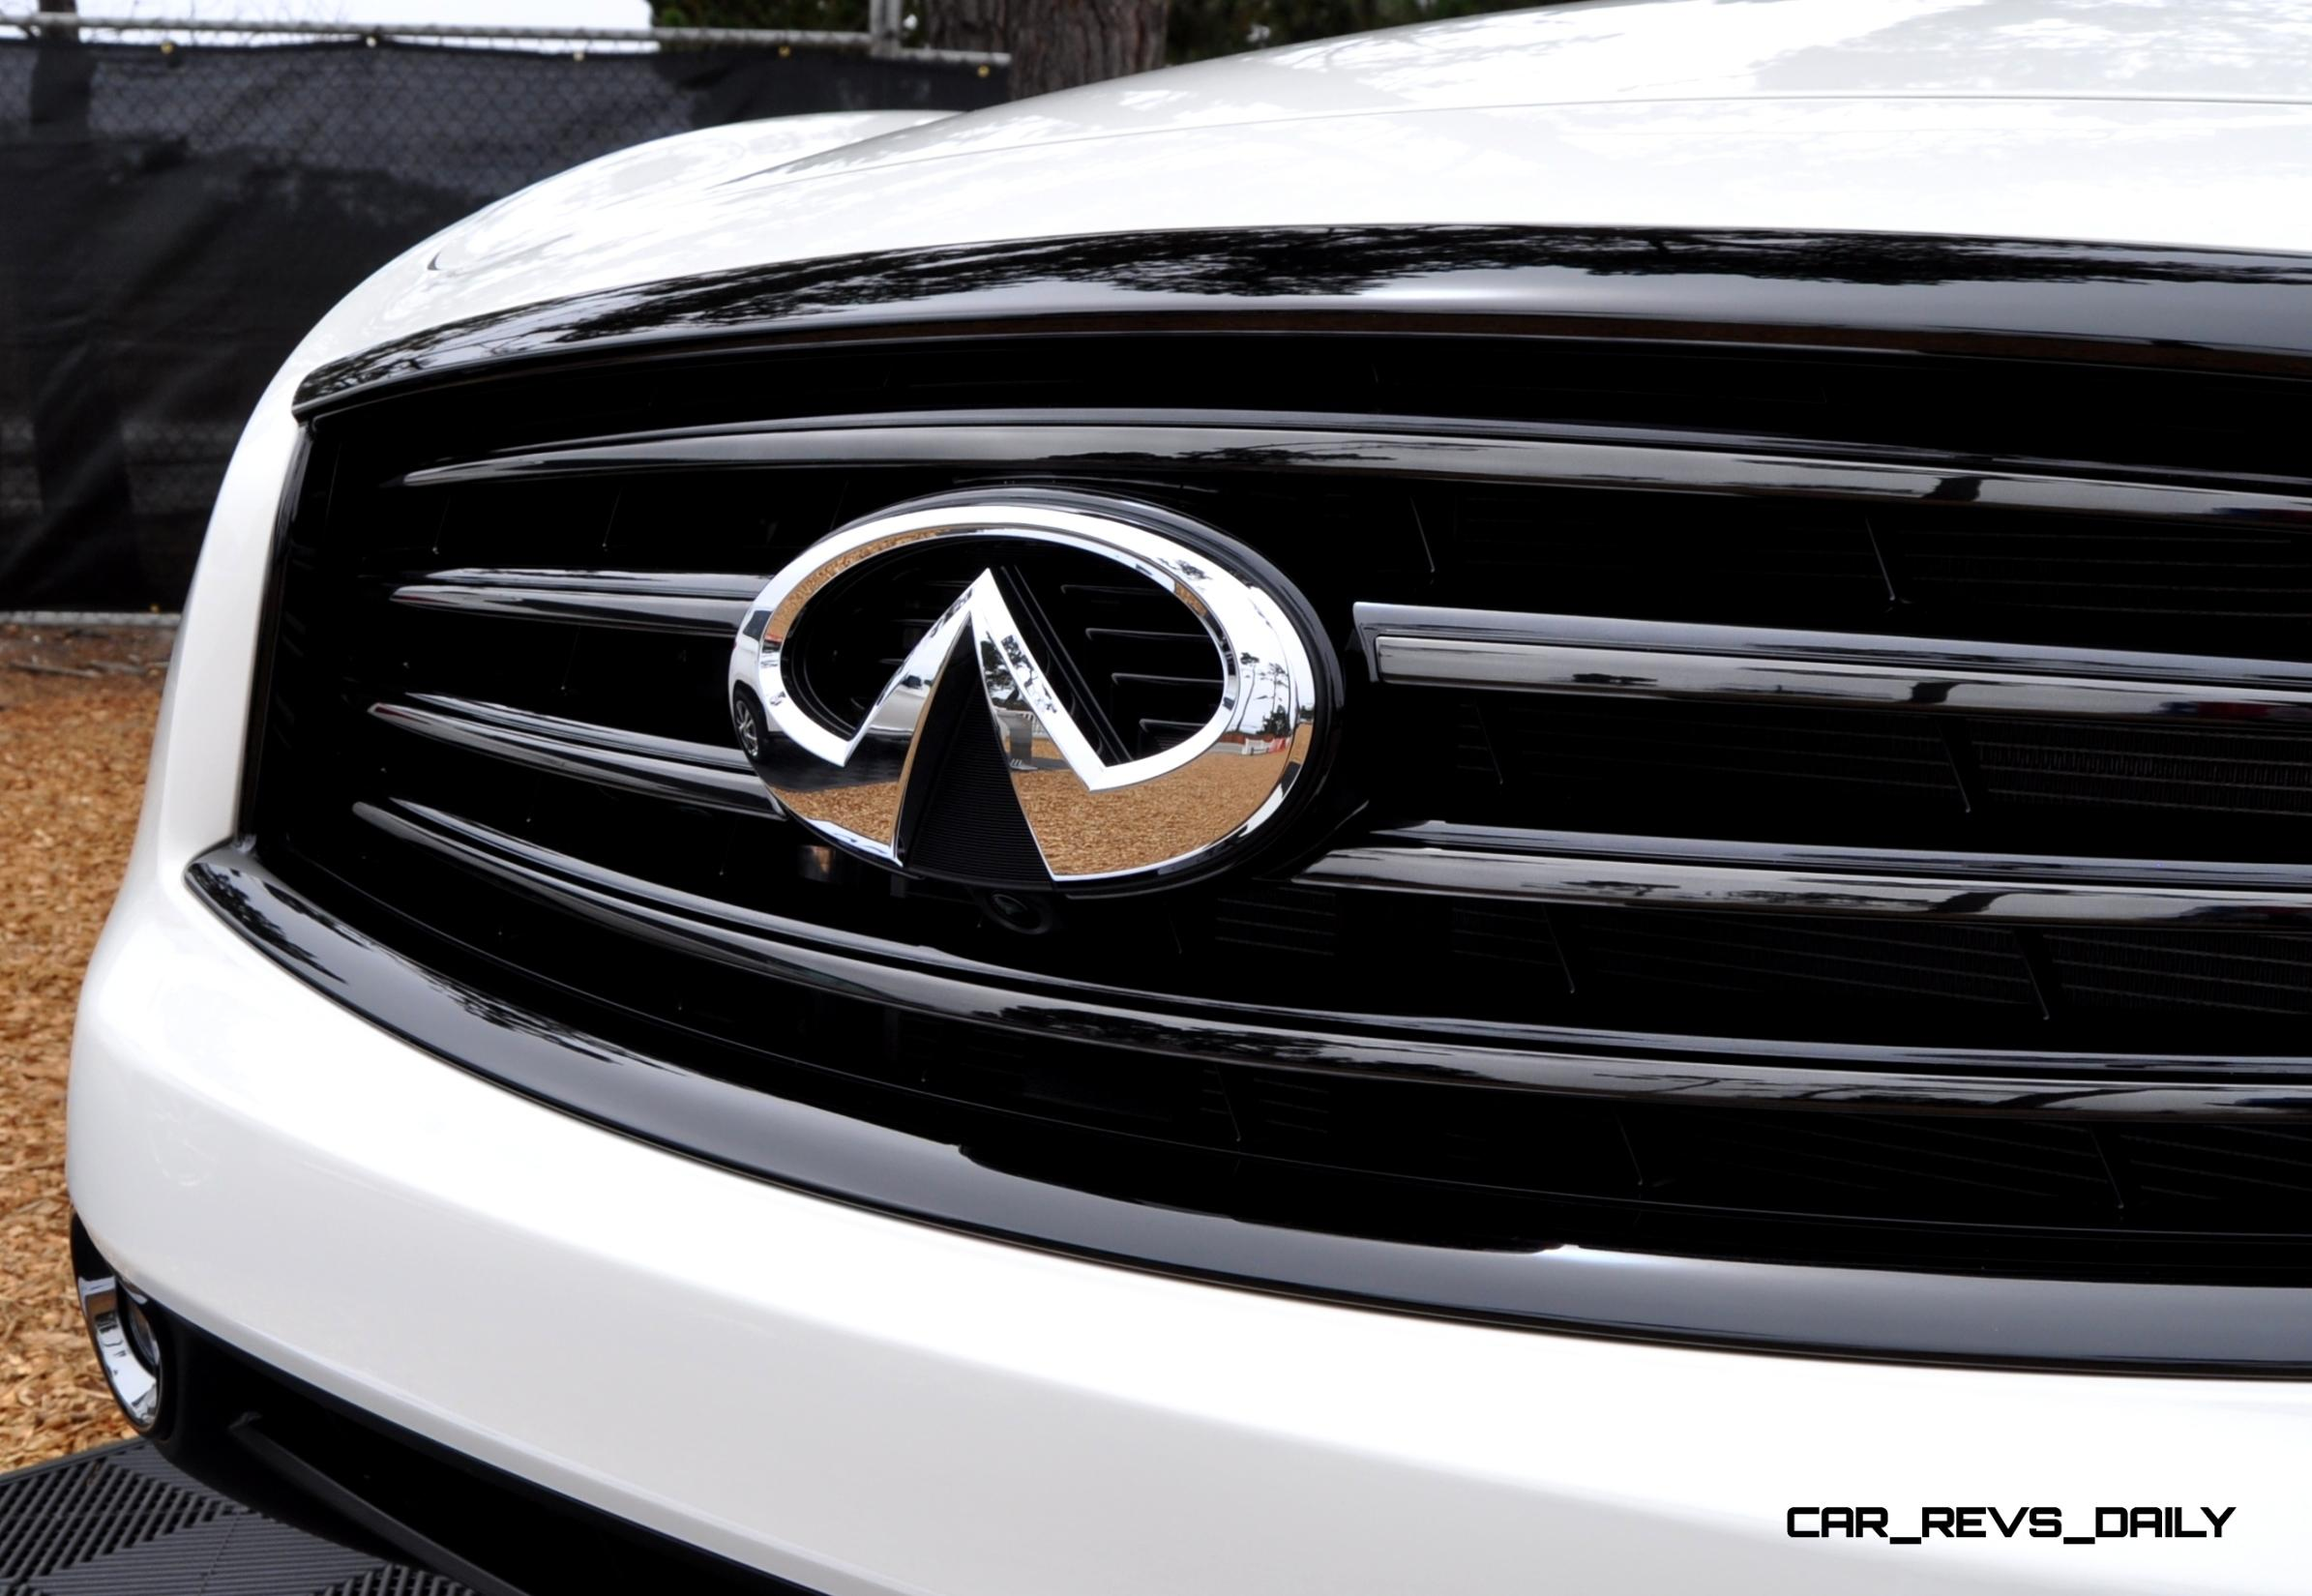 cars truth about infiniti review dsc the rwd infinity